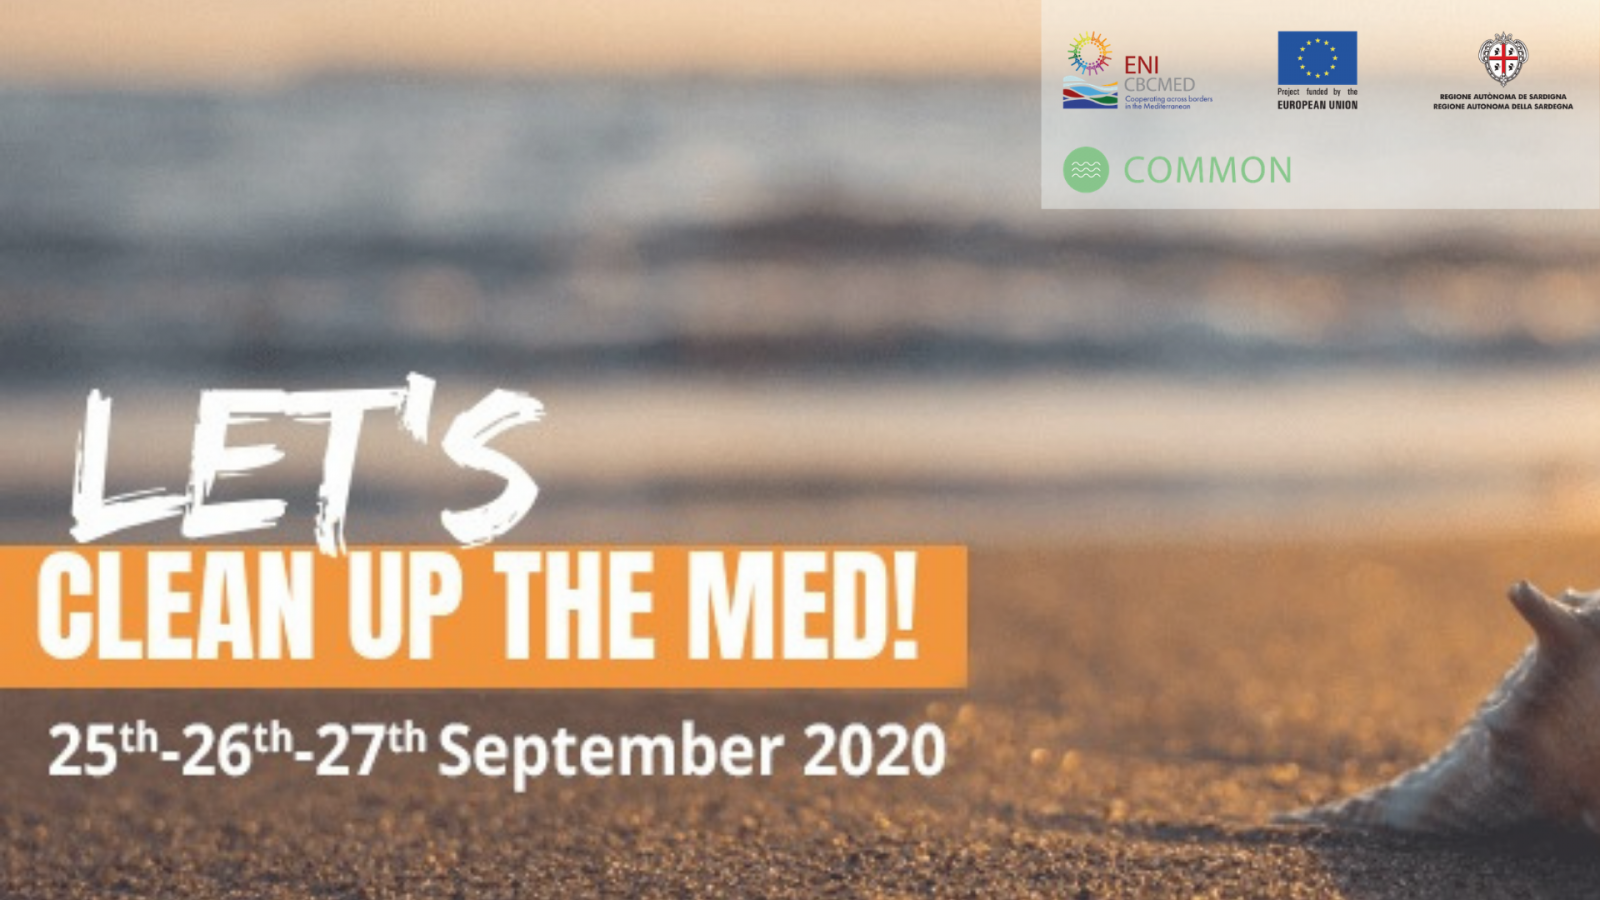 Clean Up the Med is back, promoted by the EU-funded COMMON project